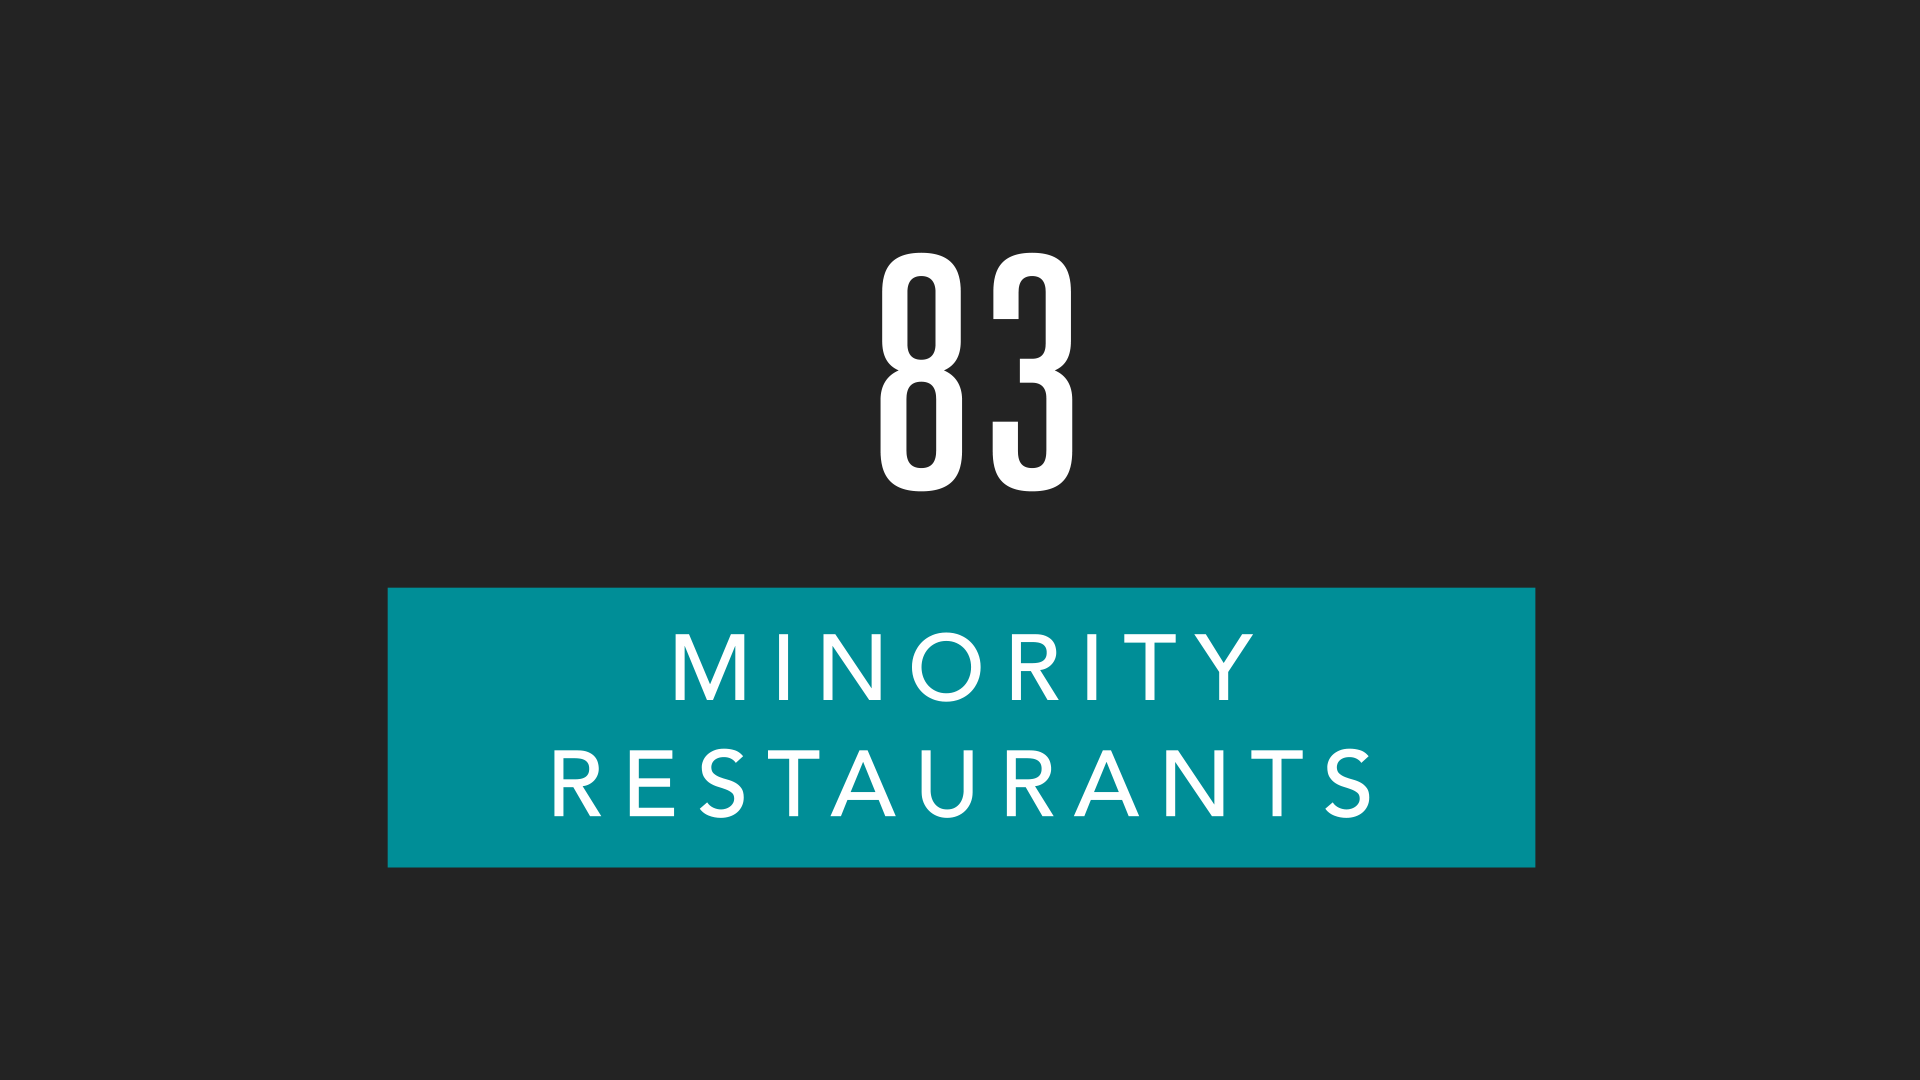 Food Relief Program - 83 Minority Restaurants